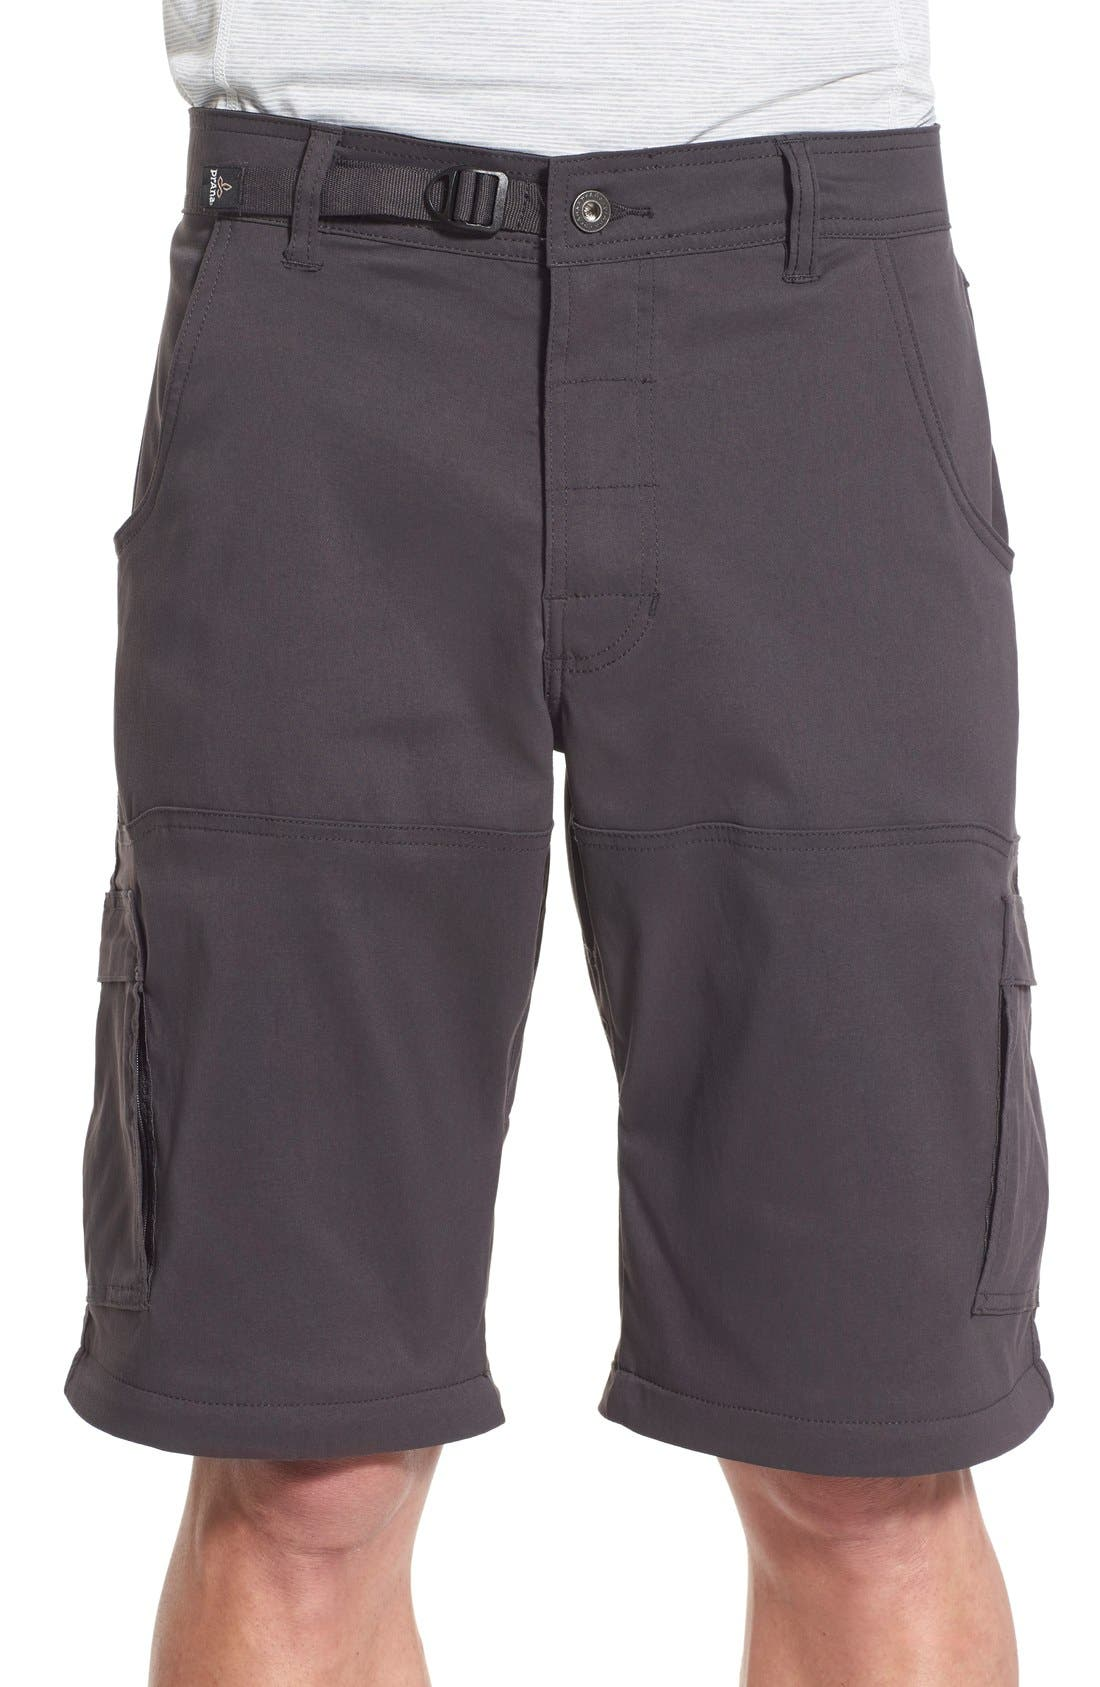 Zion Stretch Convertible Cargo Hiking Pants,                             Alternate thumbnail 6, color,                             010